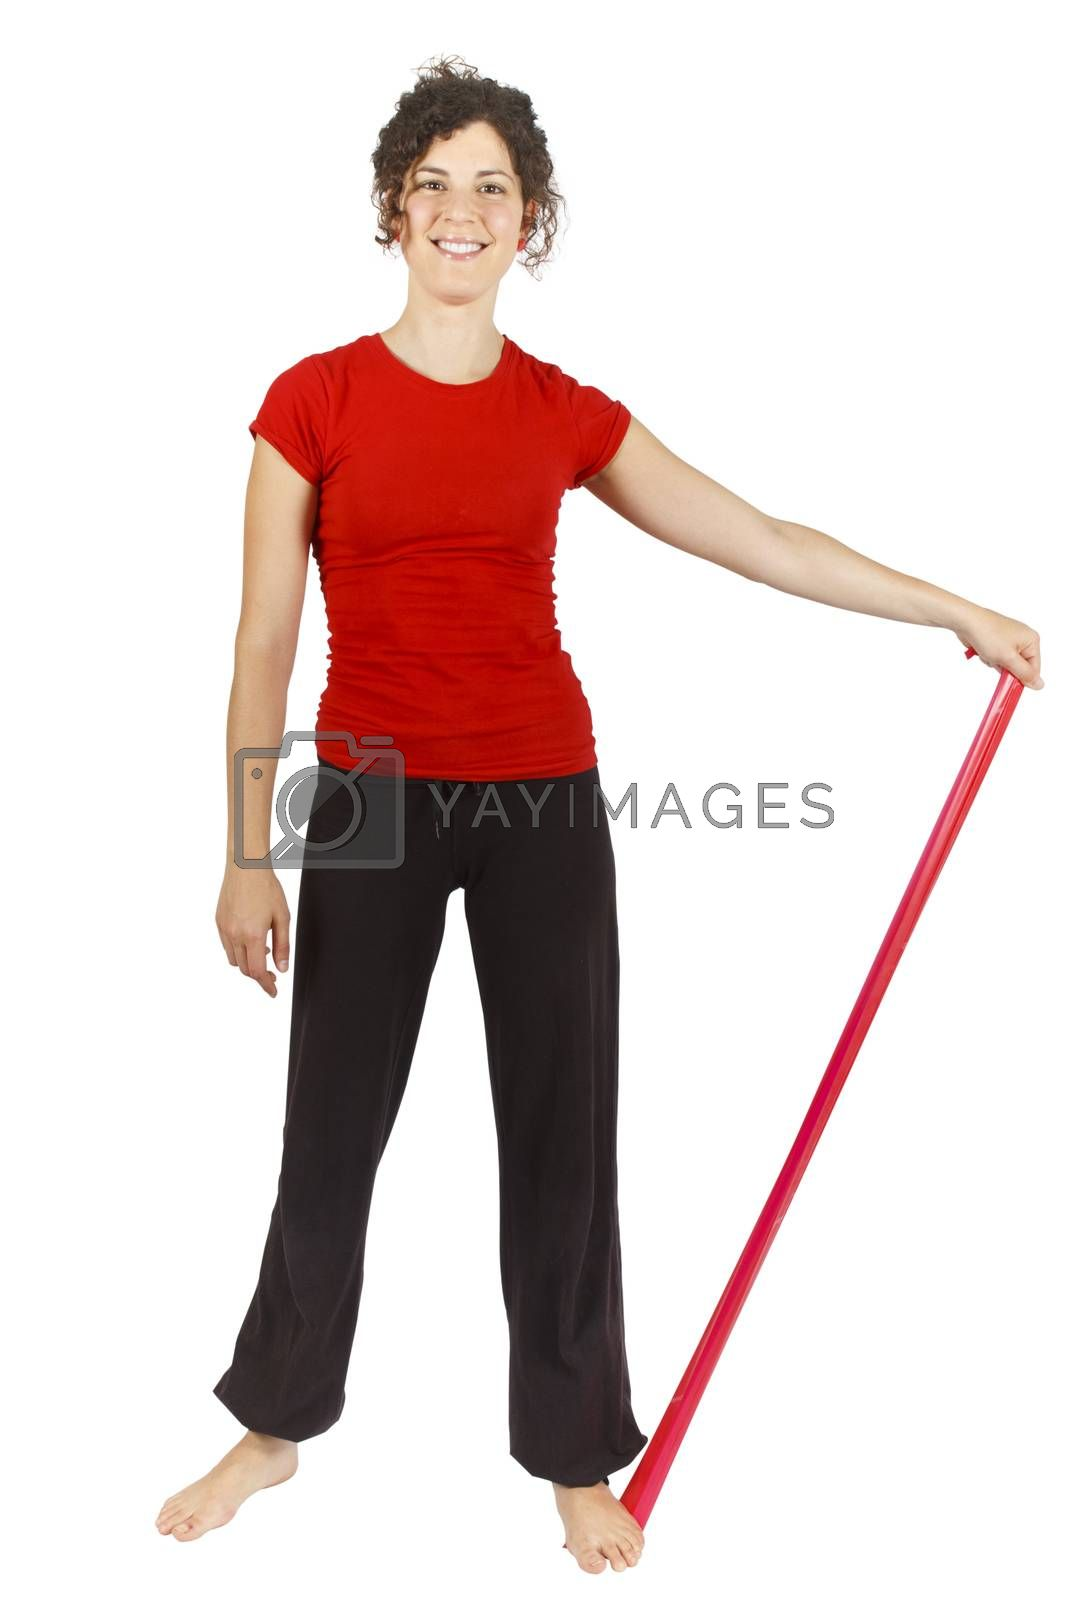 Young woman doing some exercise with an elastic ribbon.